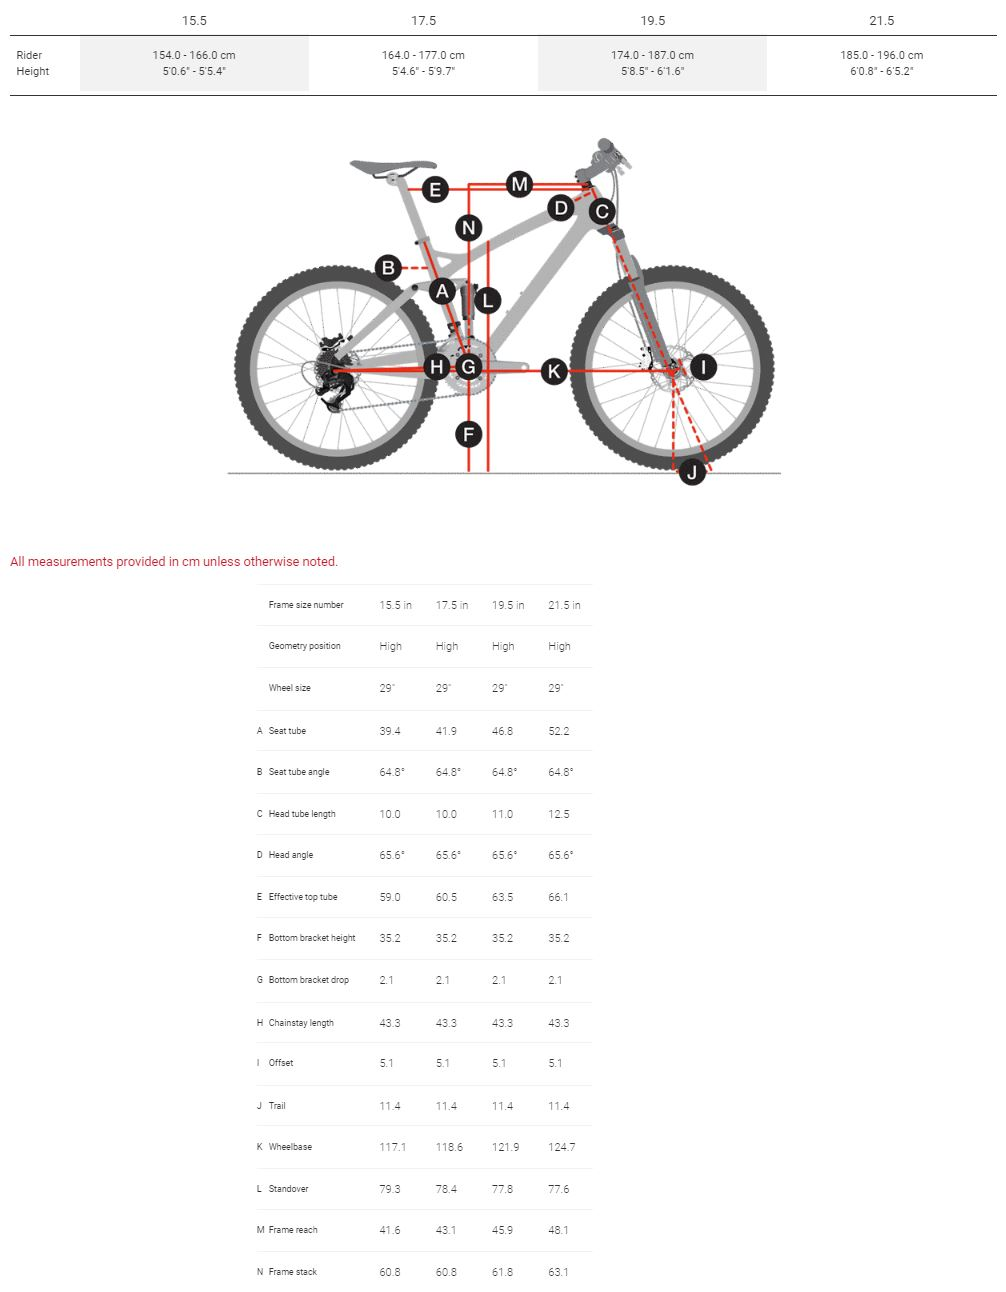 Trek Slash 9.7 geometry chart